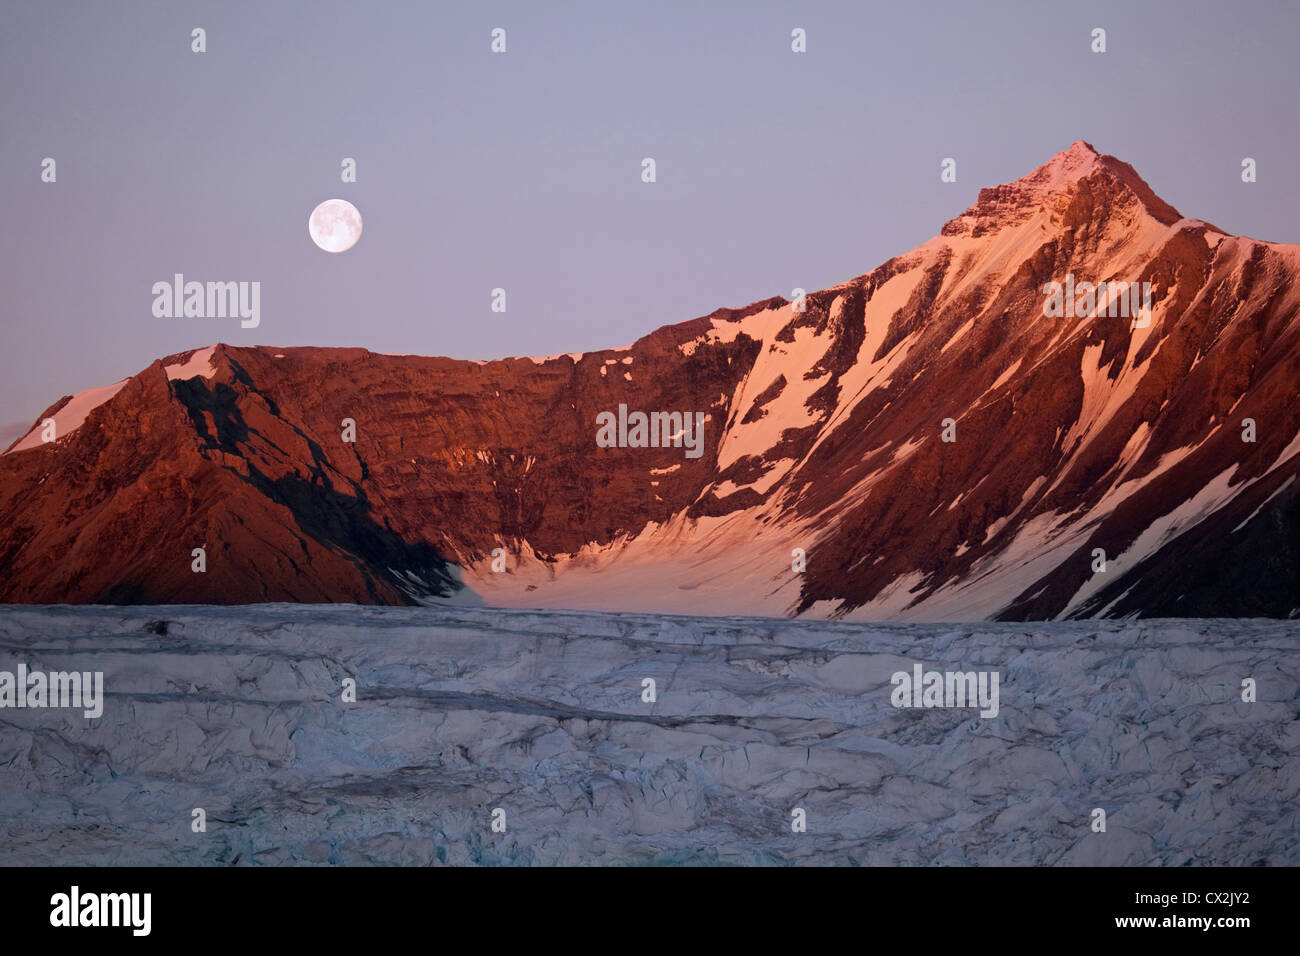 Full moon rising over glacier and mountains at Svalbard, Spitsbergen, Norway - Stock Image